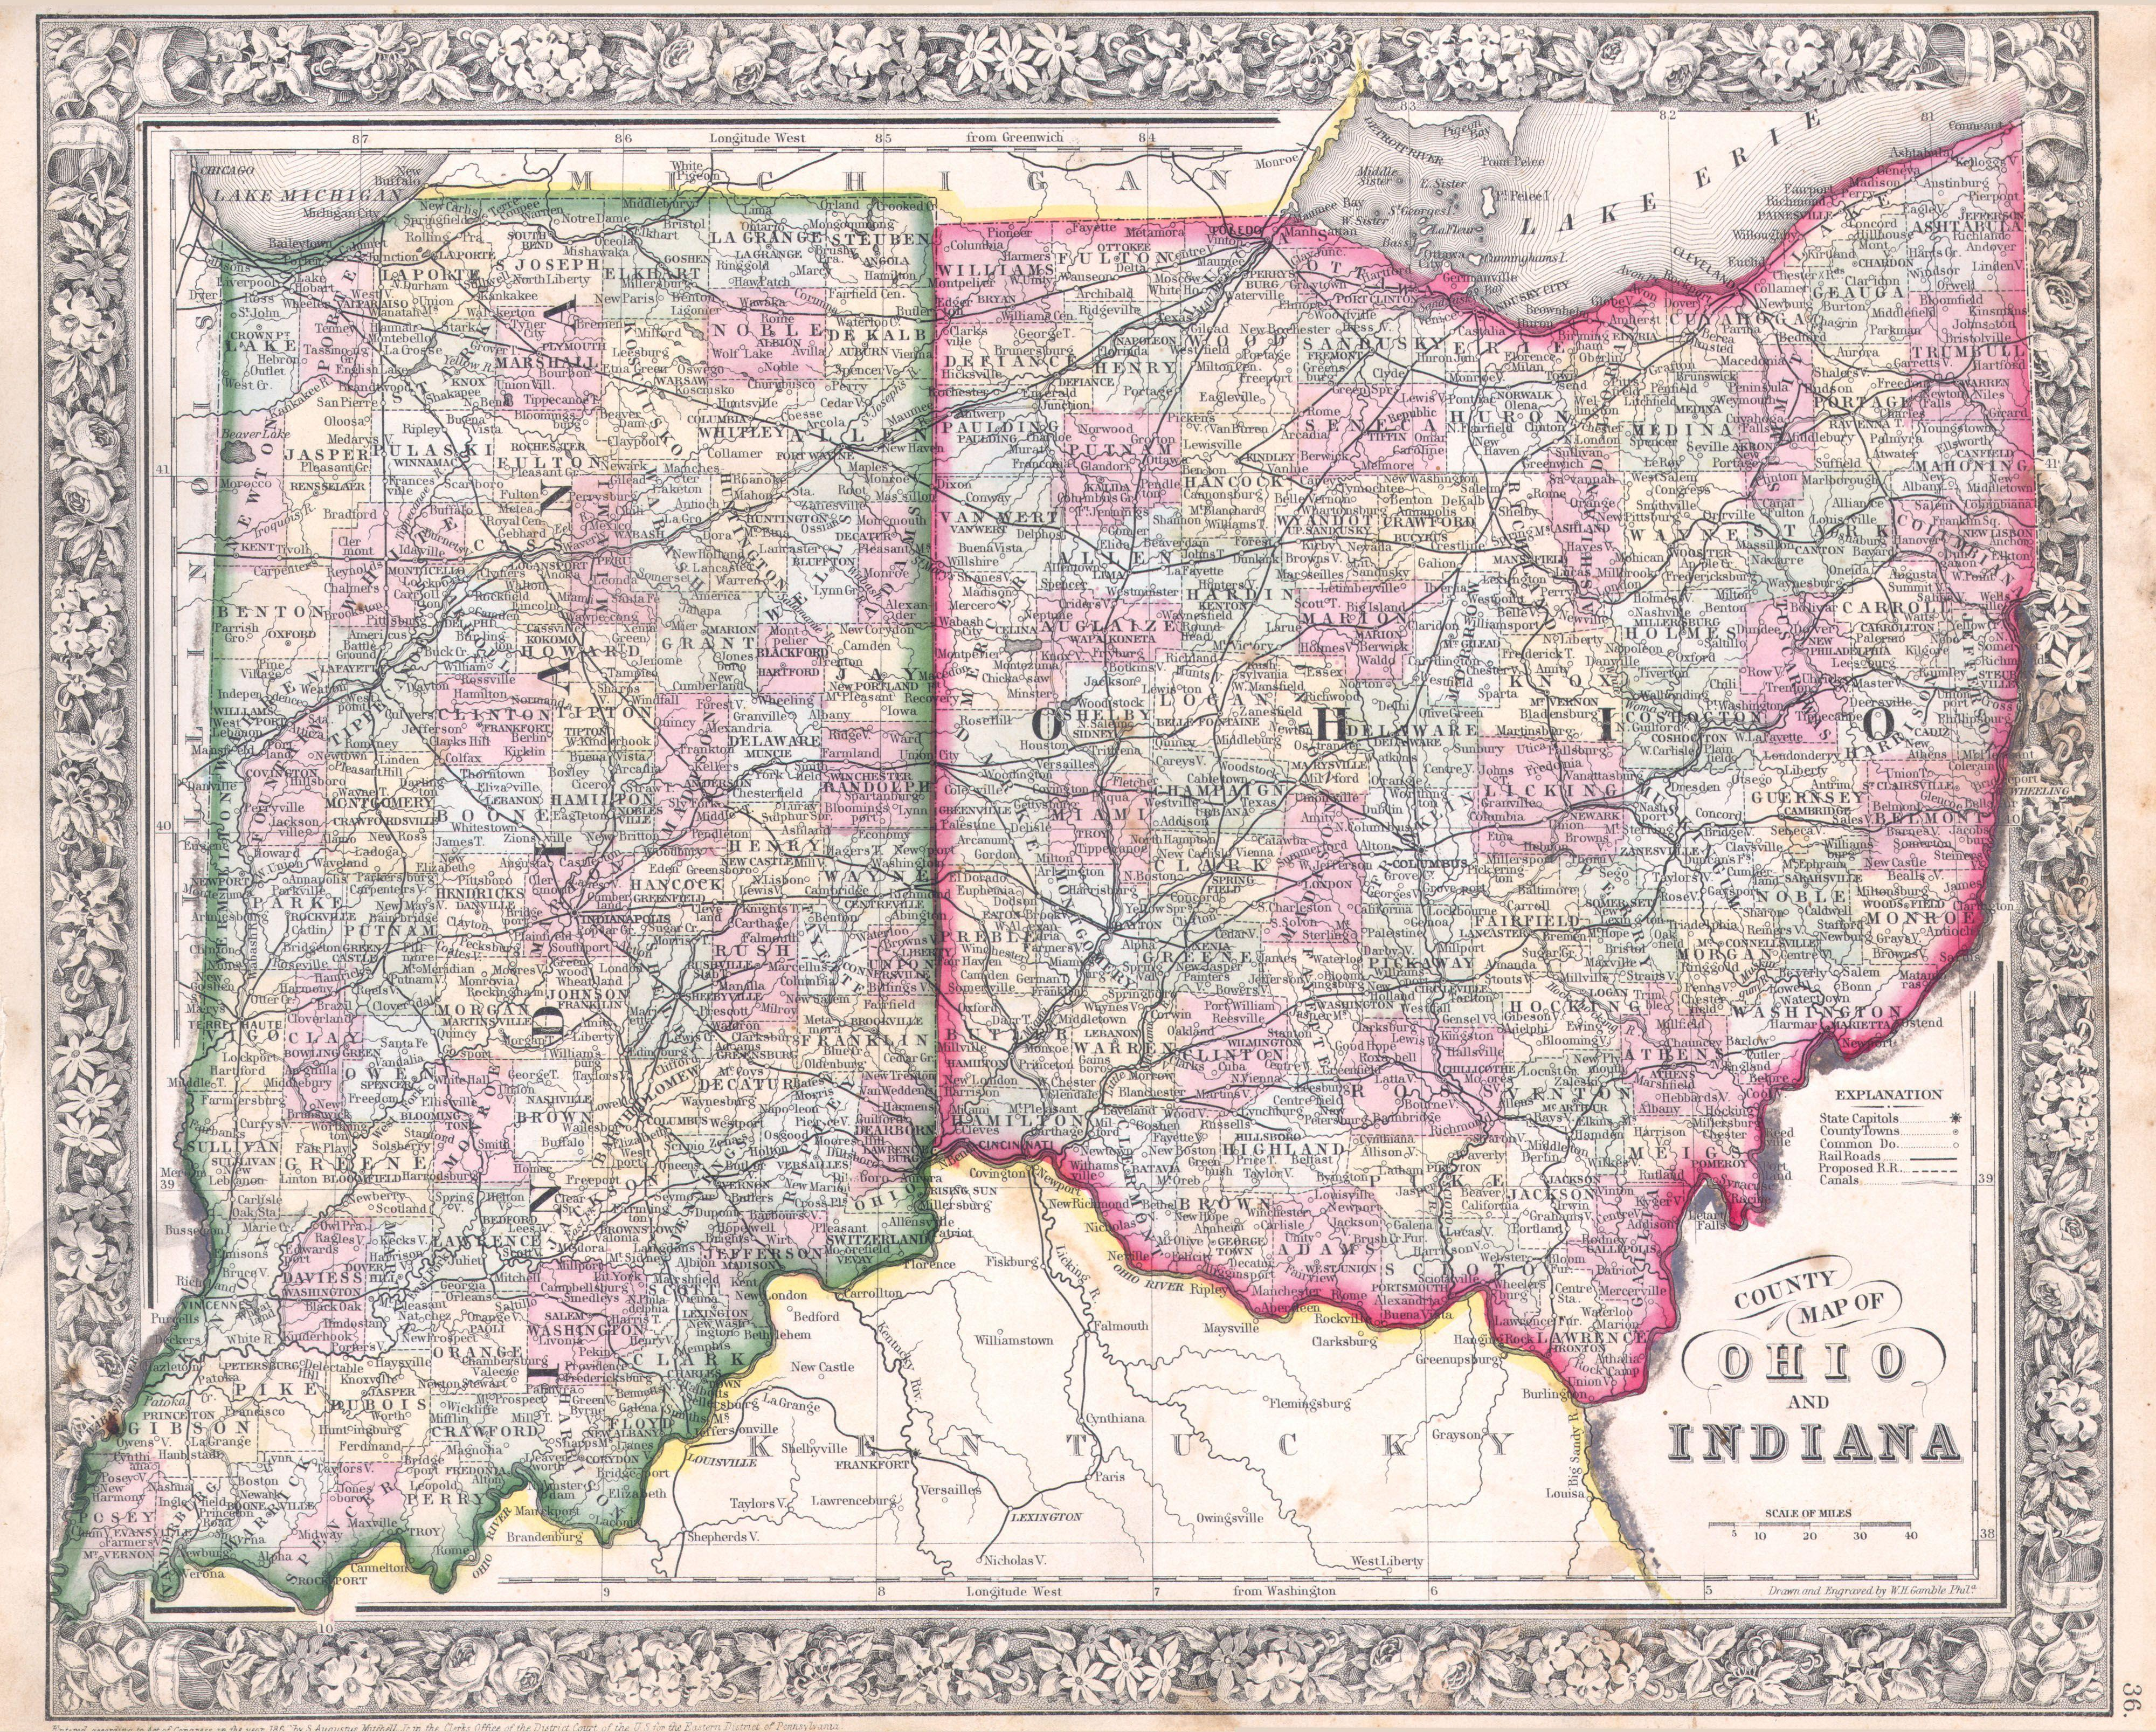 Map Of Indiana And Ohio File:1864 Mitchell Map of Ohio and Indiana   Geographicus   OHIN  Map Of Indiana And Ohio